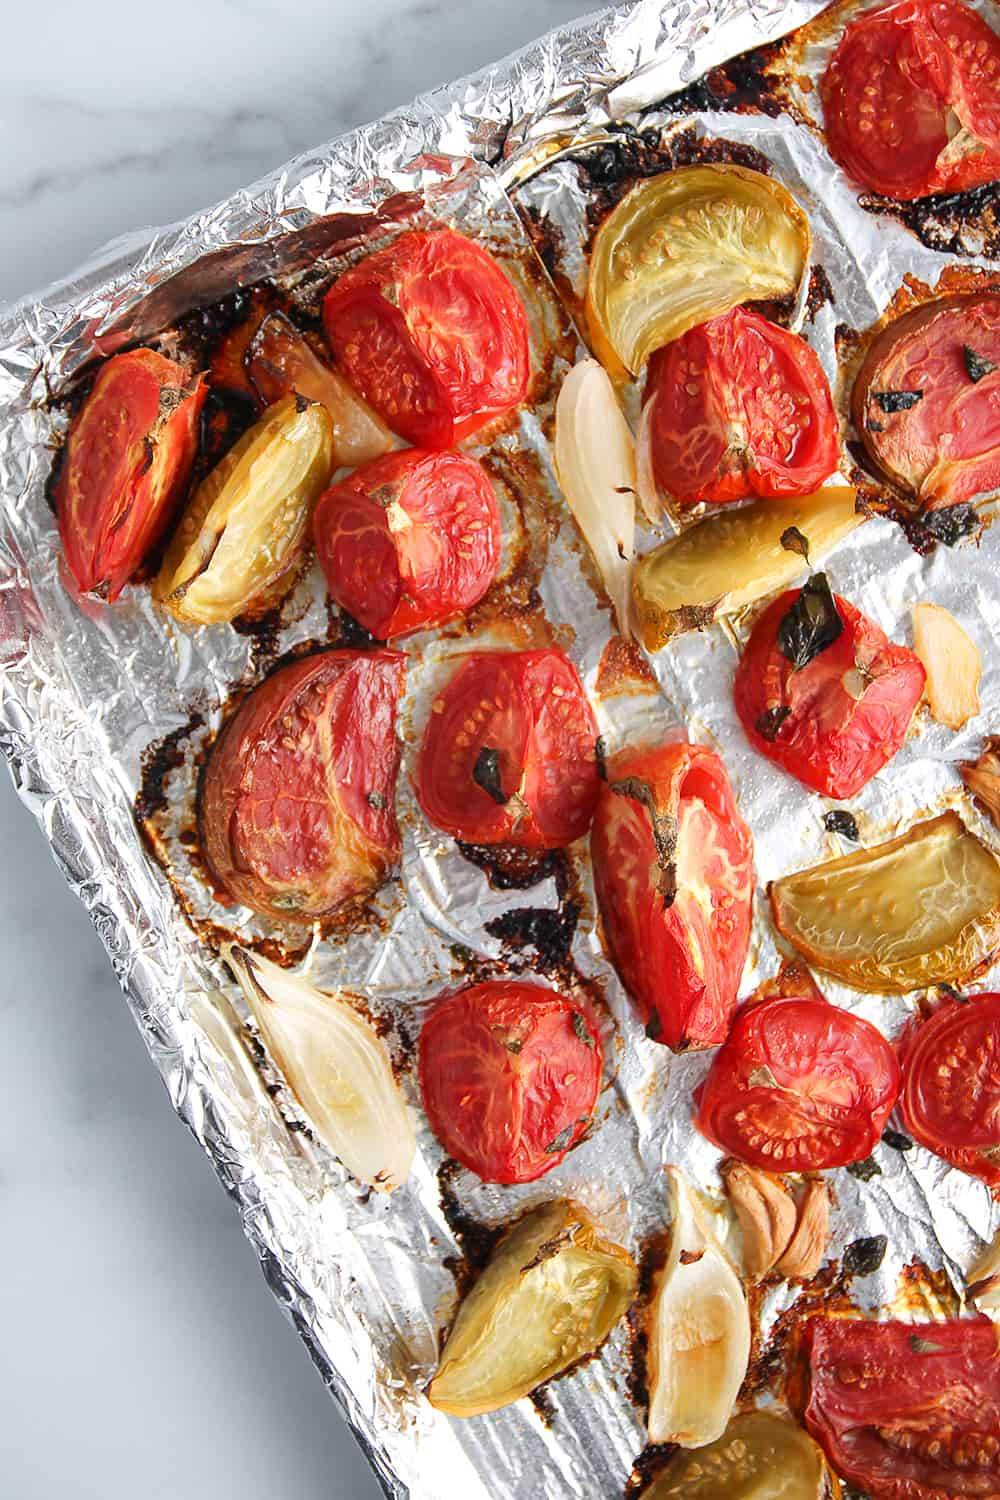 Roasted tomato sauce on a foiled-lined sheet pan